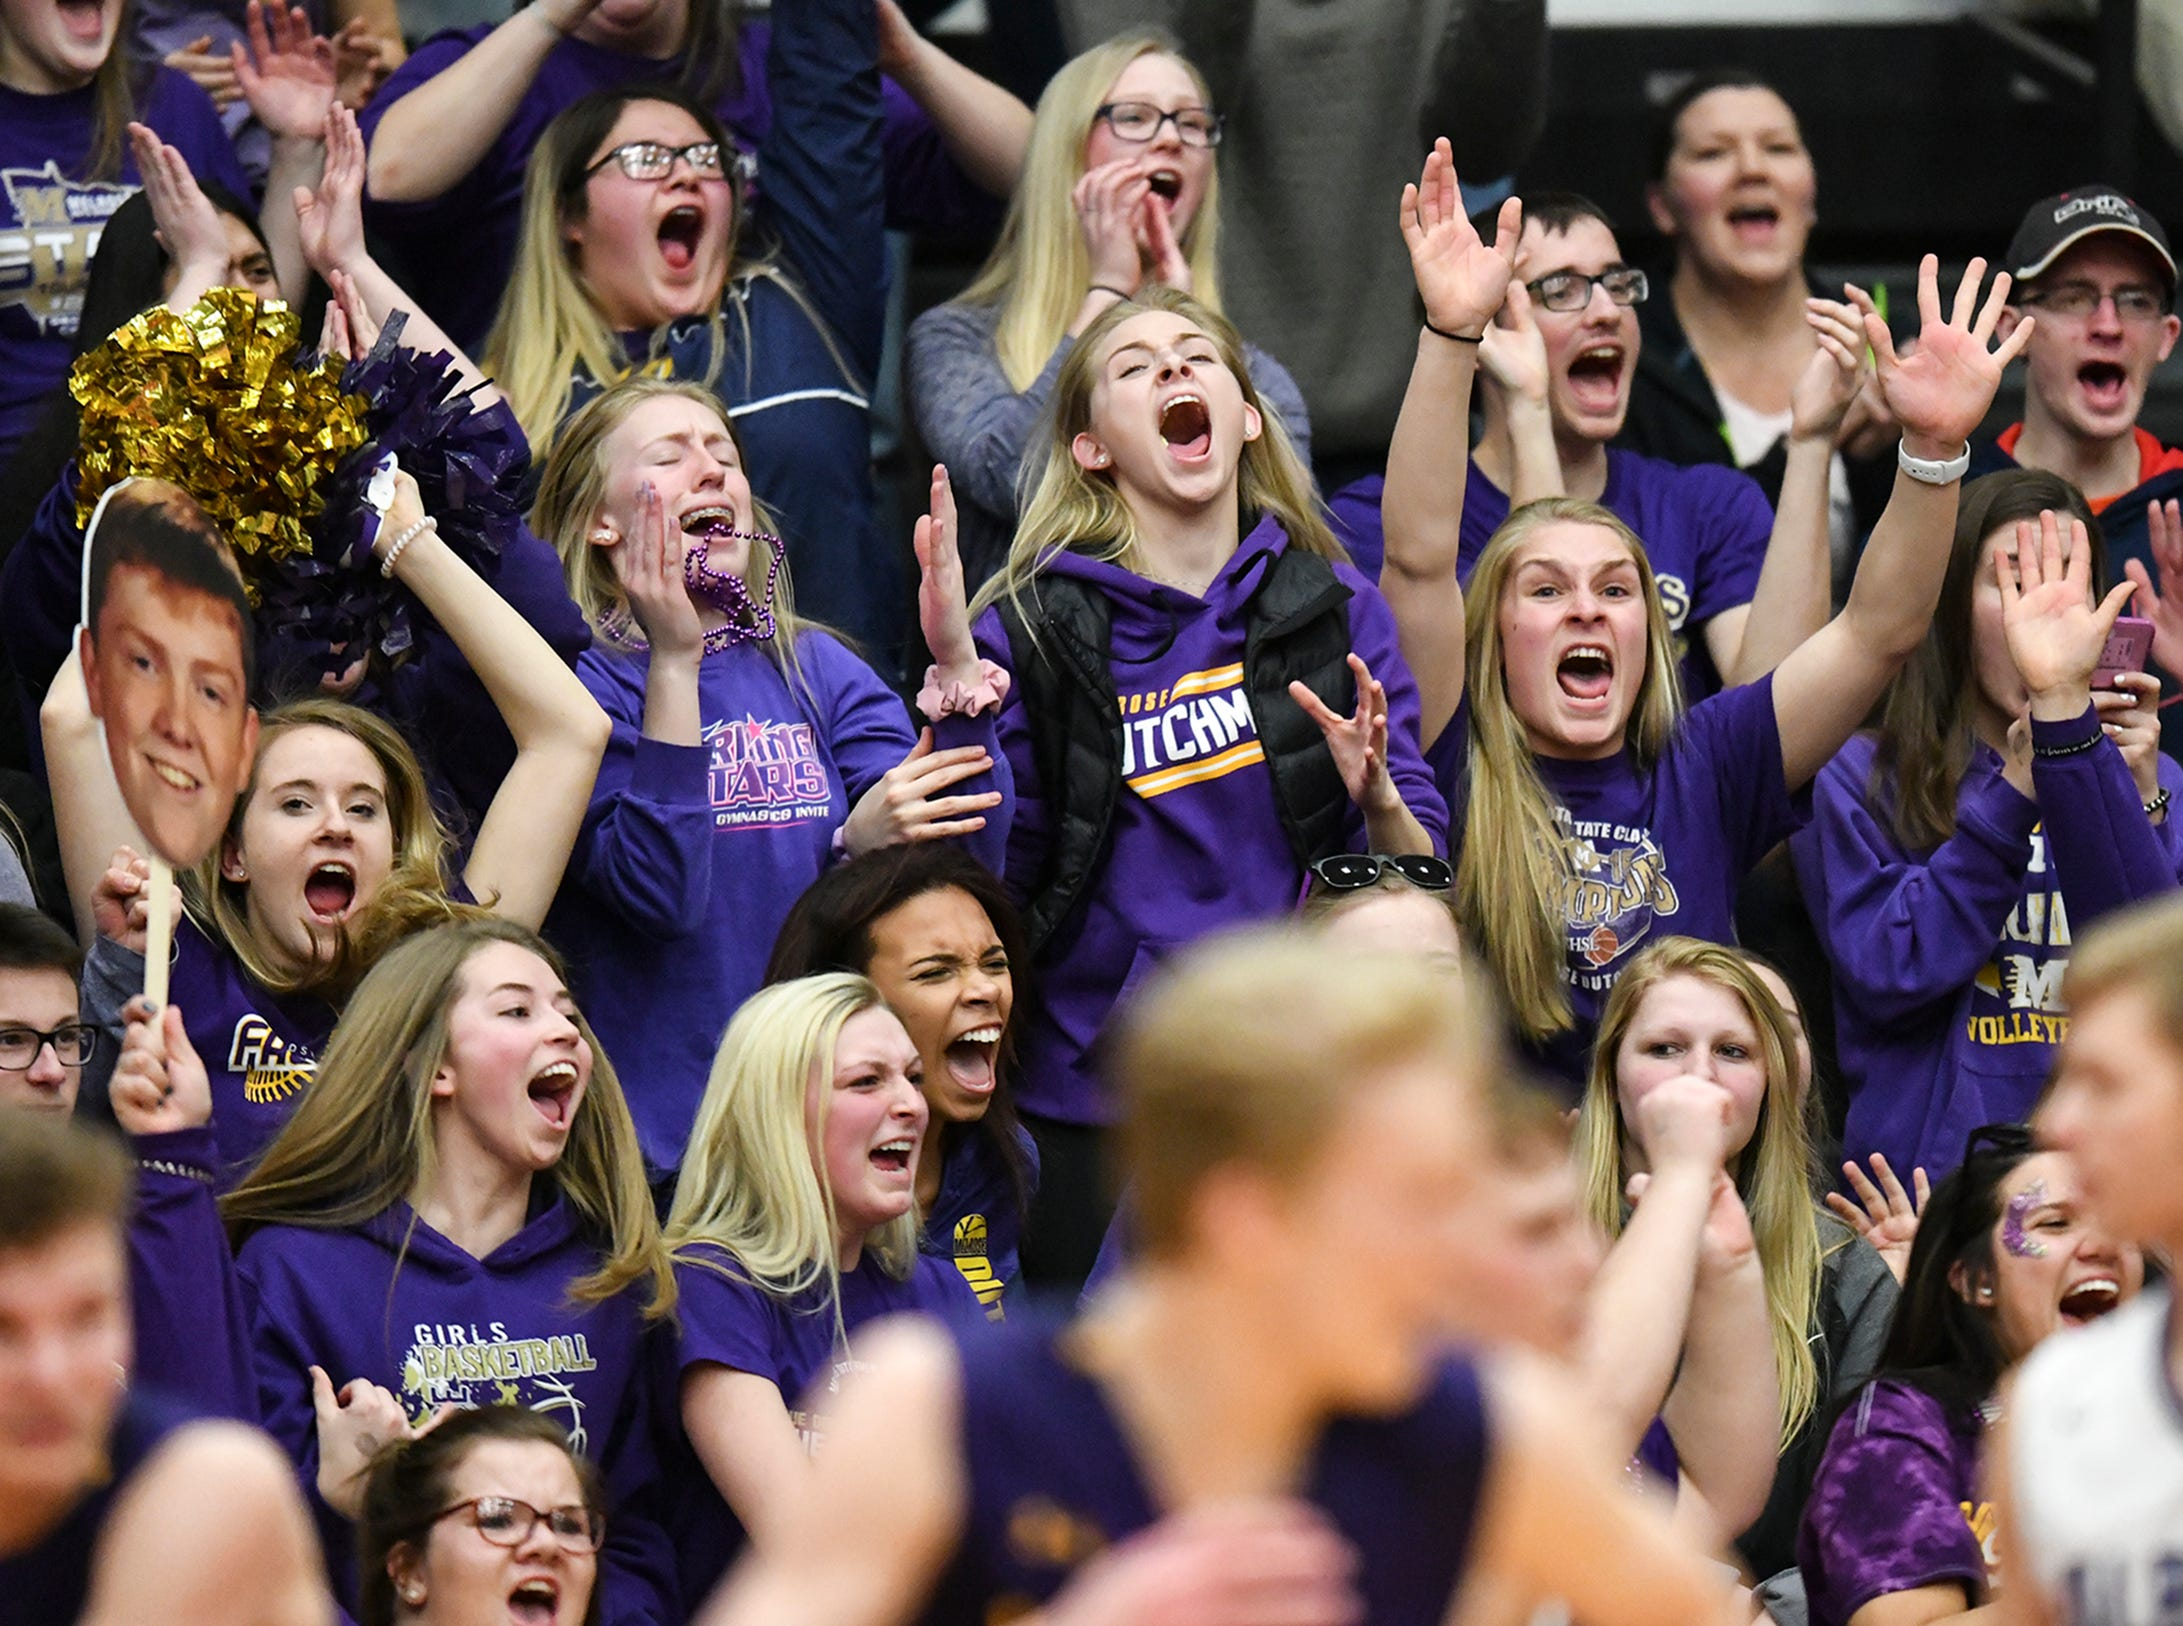 Melrose fans celebrate as their team wins the Section 6-2A championship game 52-51 against Albany at Halenbeck Hall in St. Cloud.